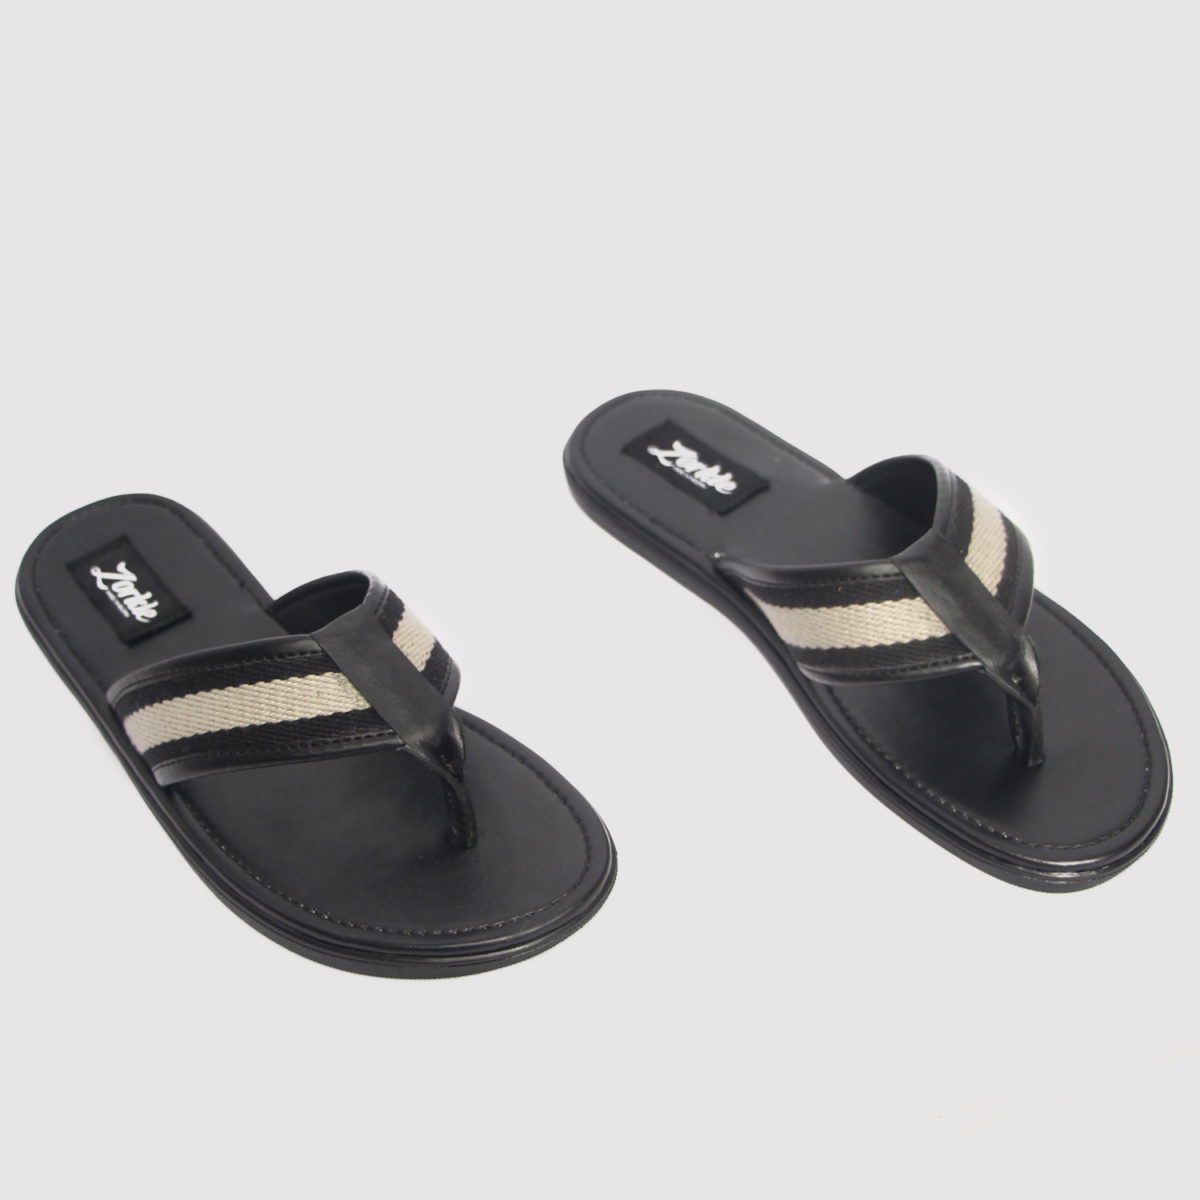 Lere flex slippers black leather zorkle shoes in lagos nigeria